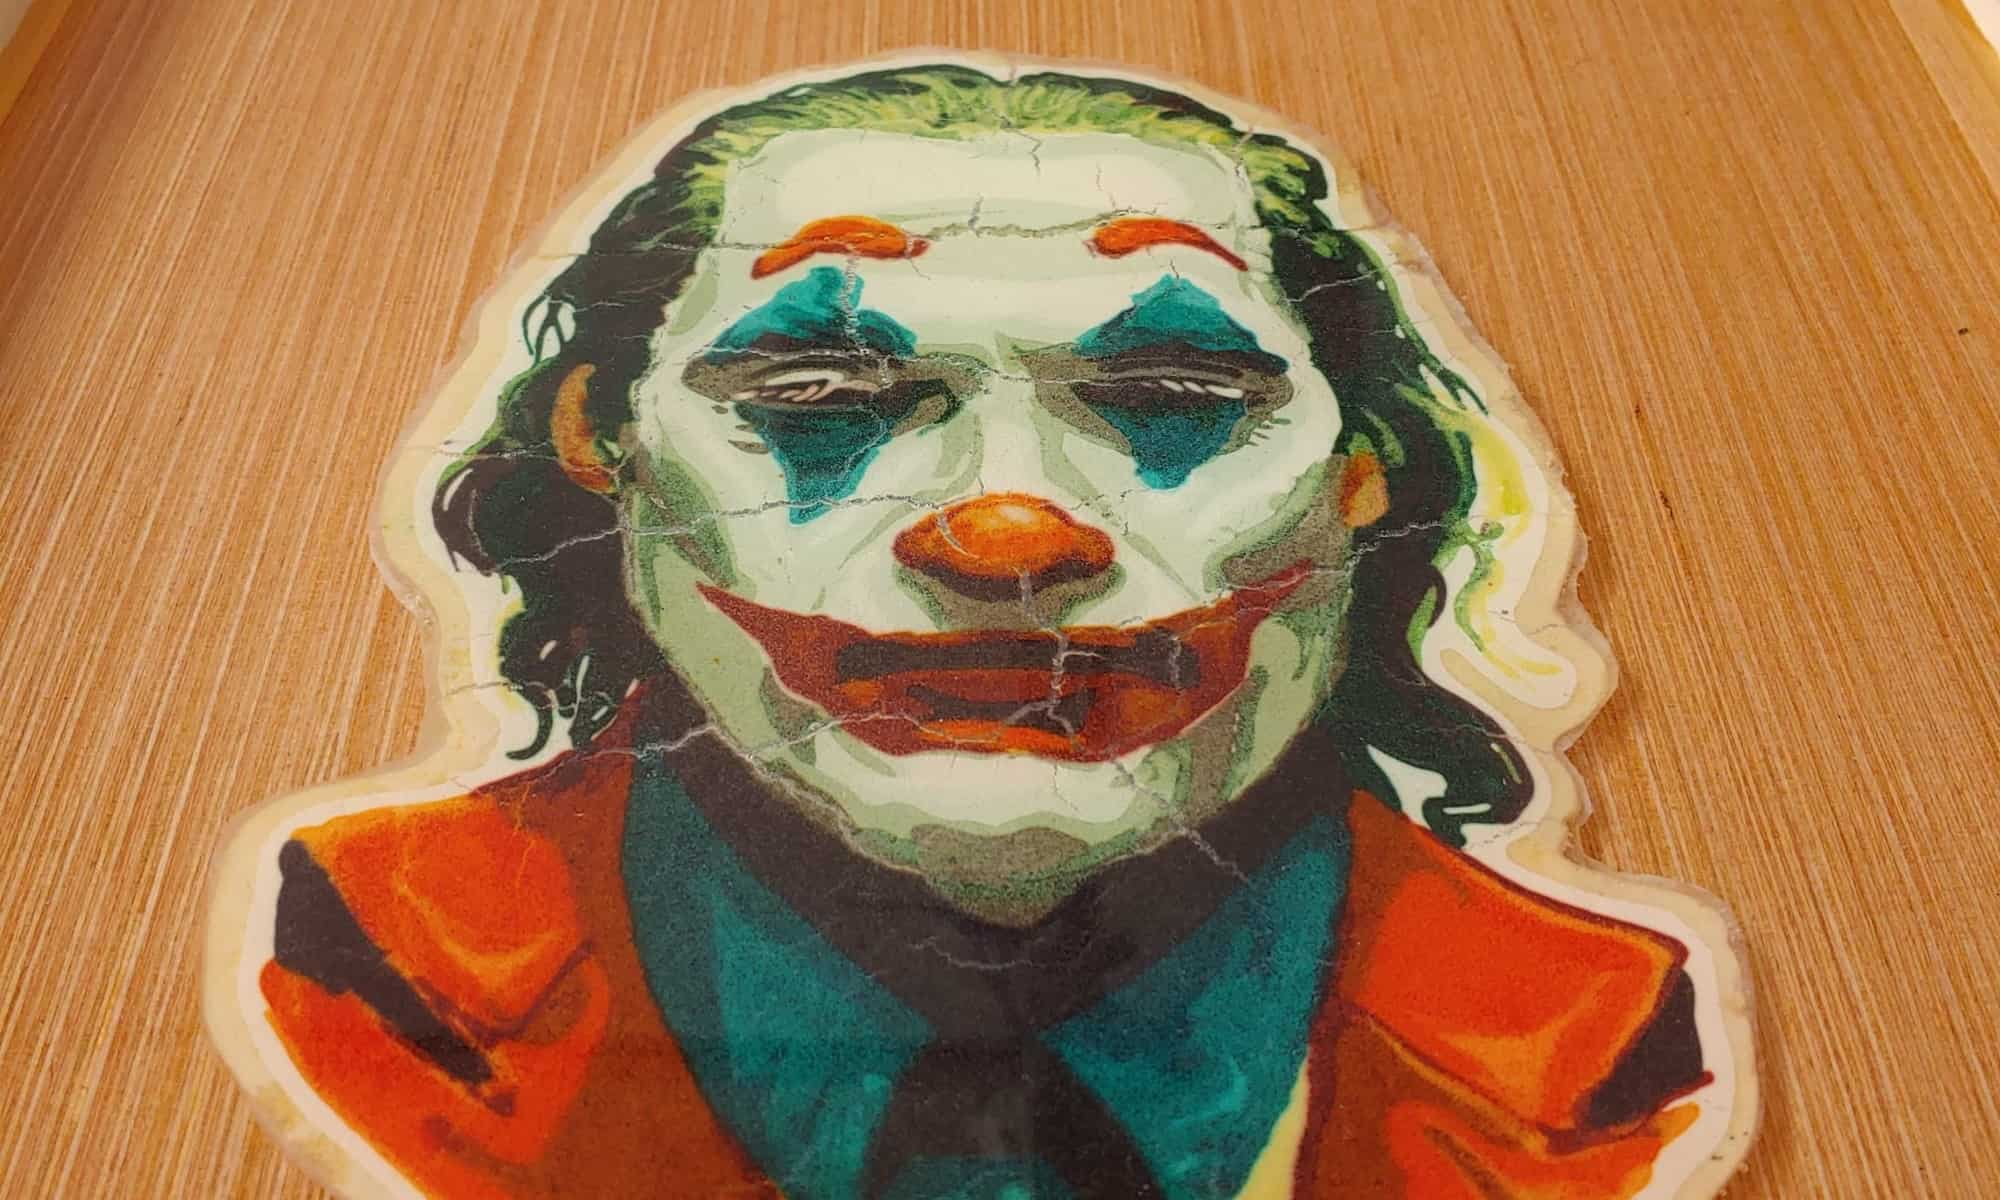 Framed and Preserved Joker Pancake Art